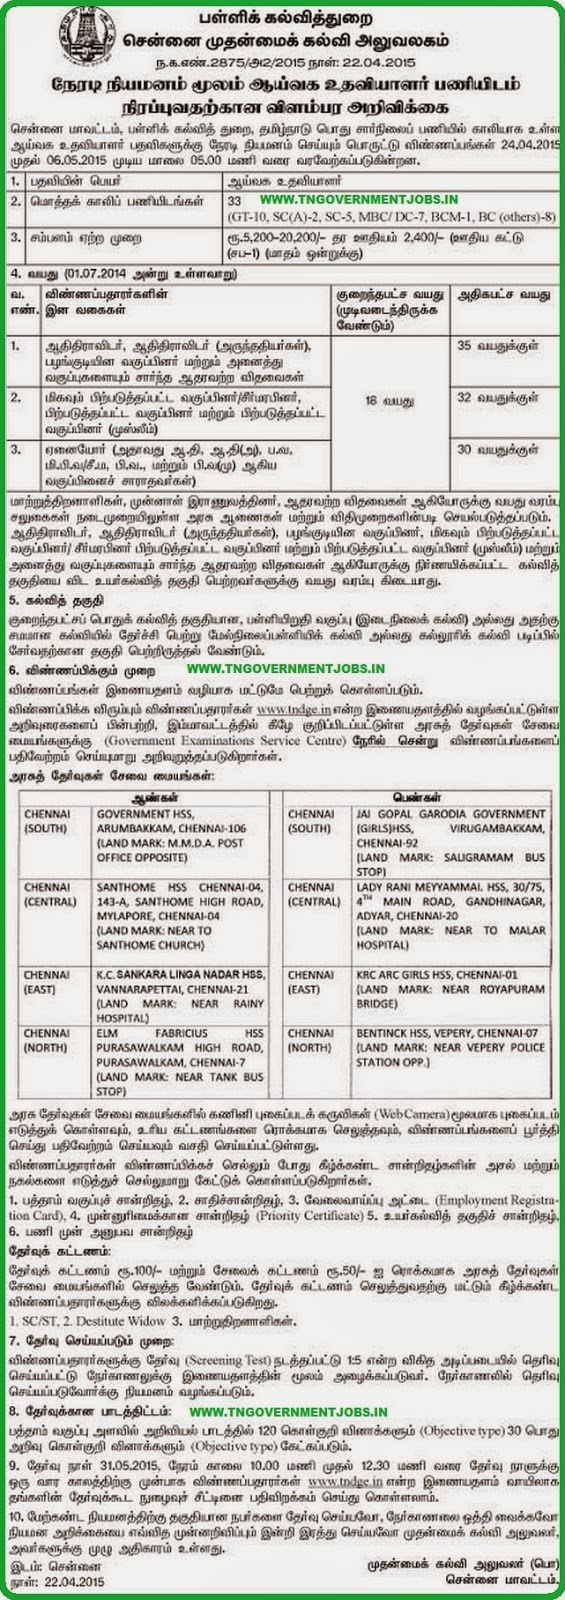 Chennai DEO Notification for Lab Assistant Recruitment (www.tngovernmentjobs.in)